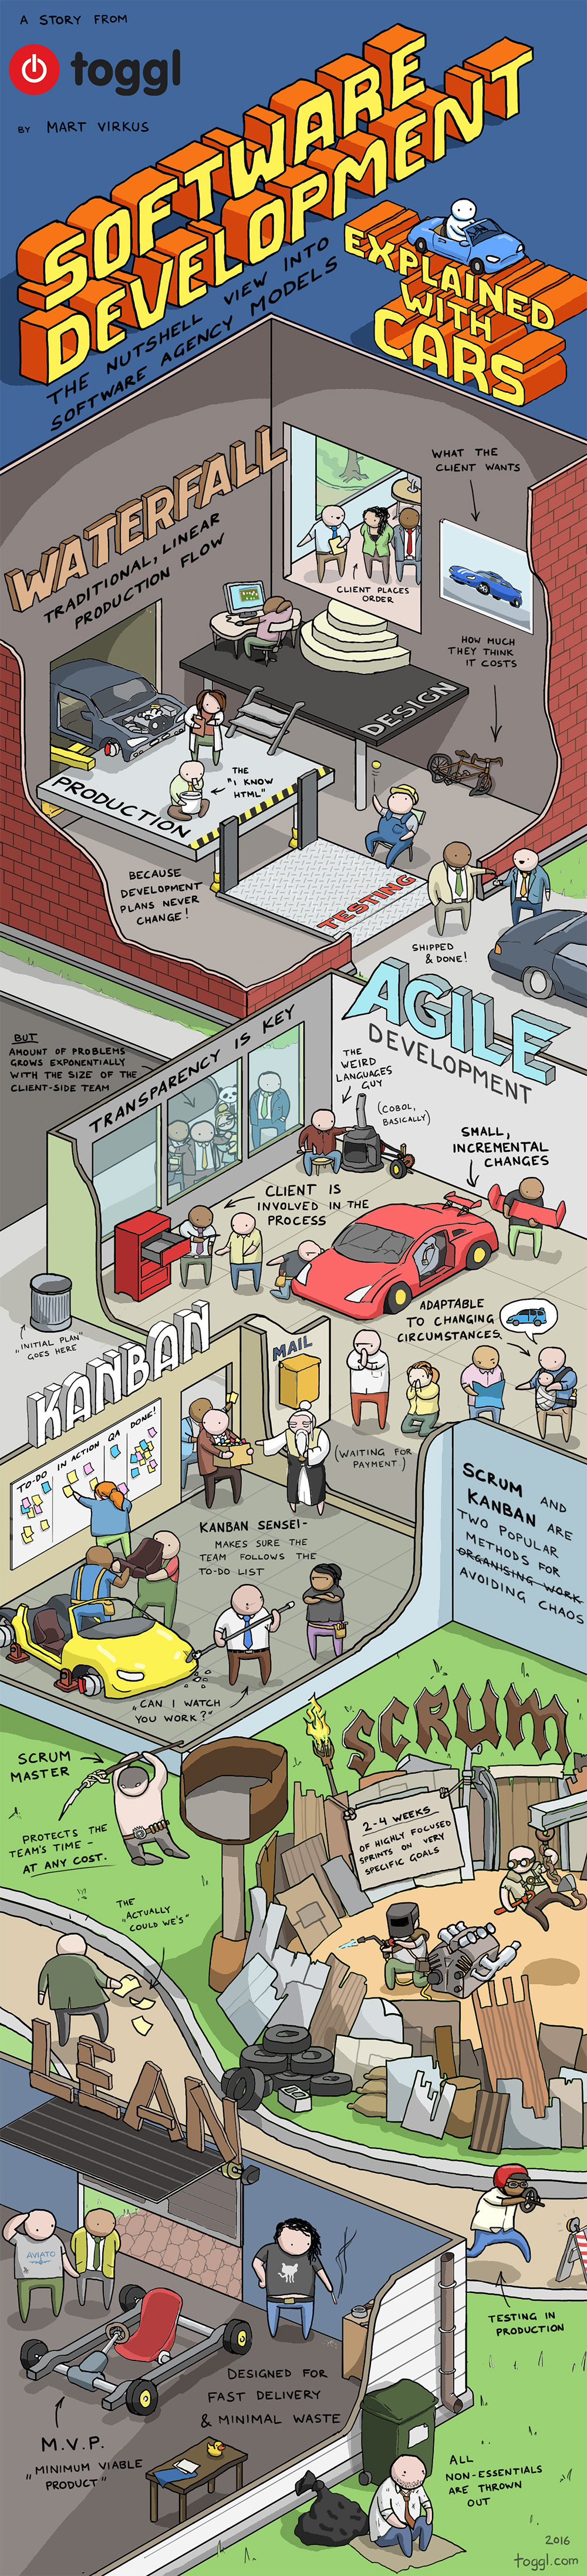 software-development-methods-explained-with-cars-toggl-infographic-02.jpg